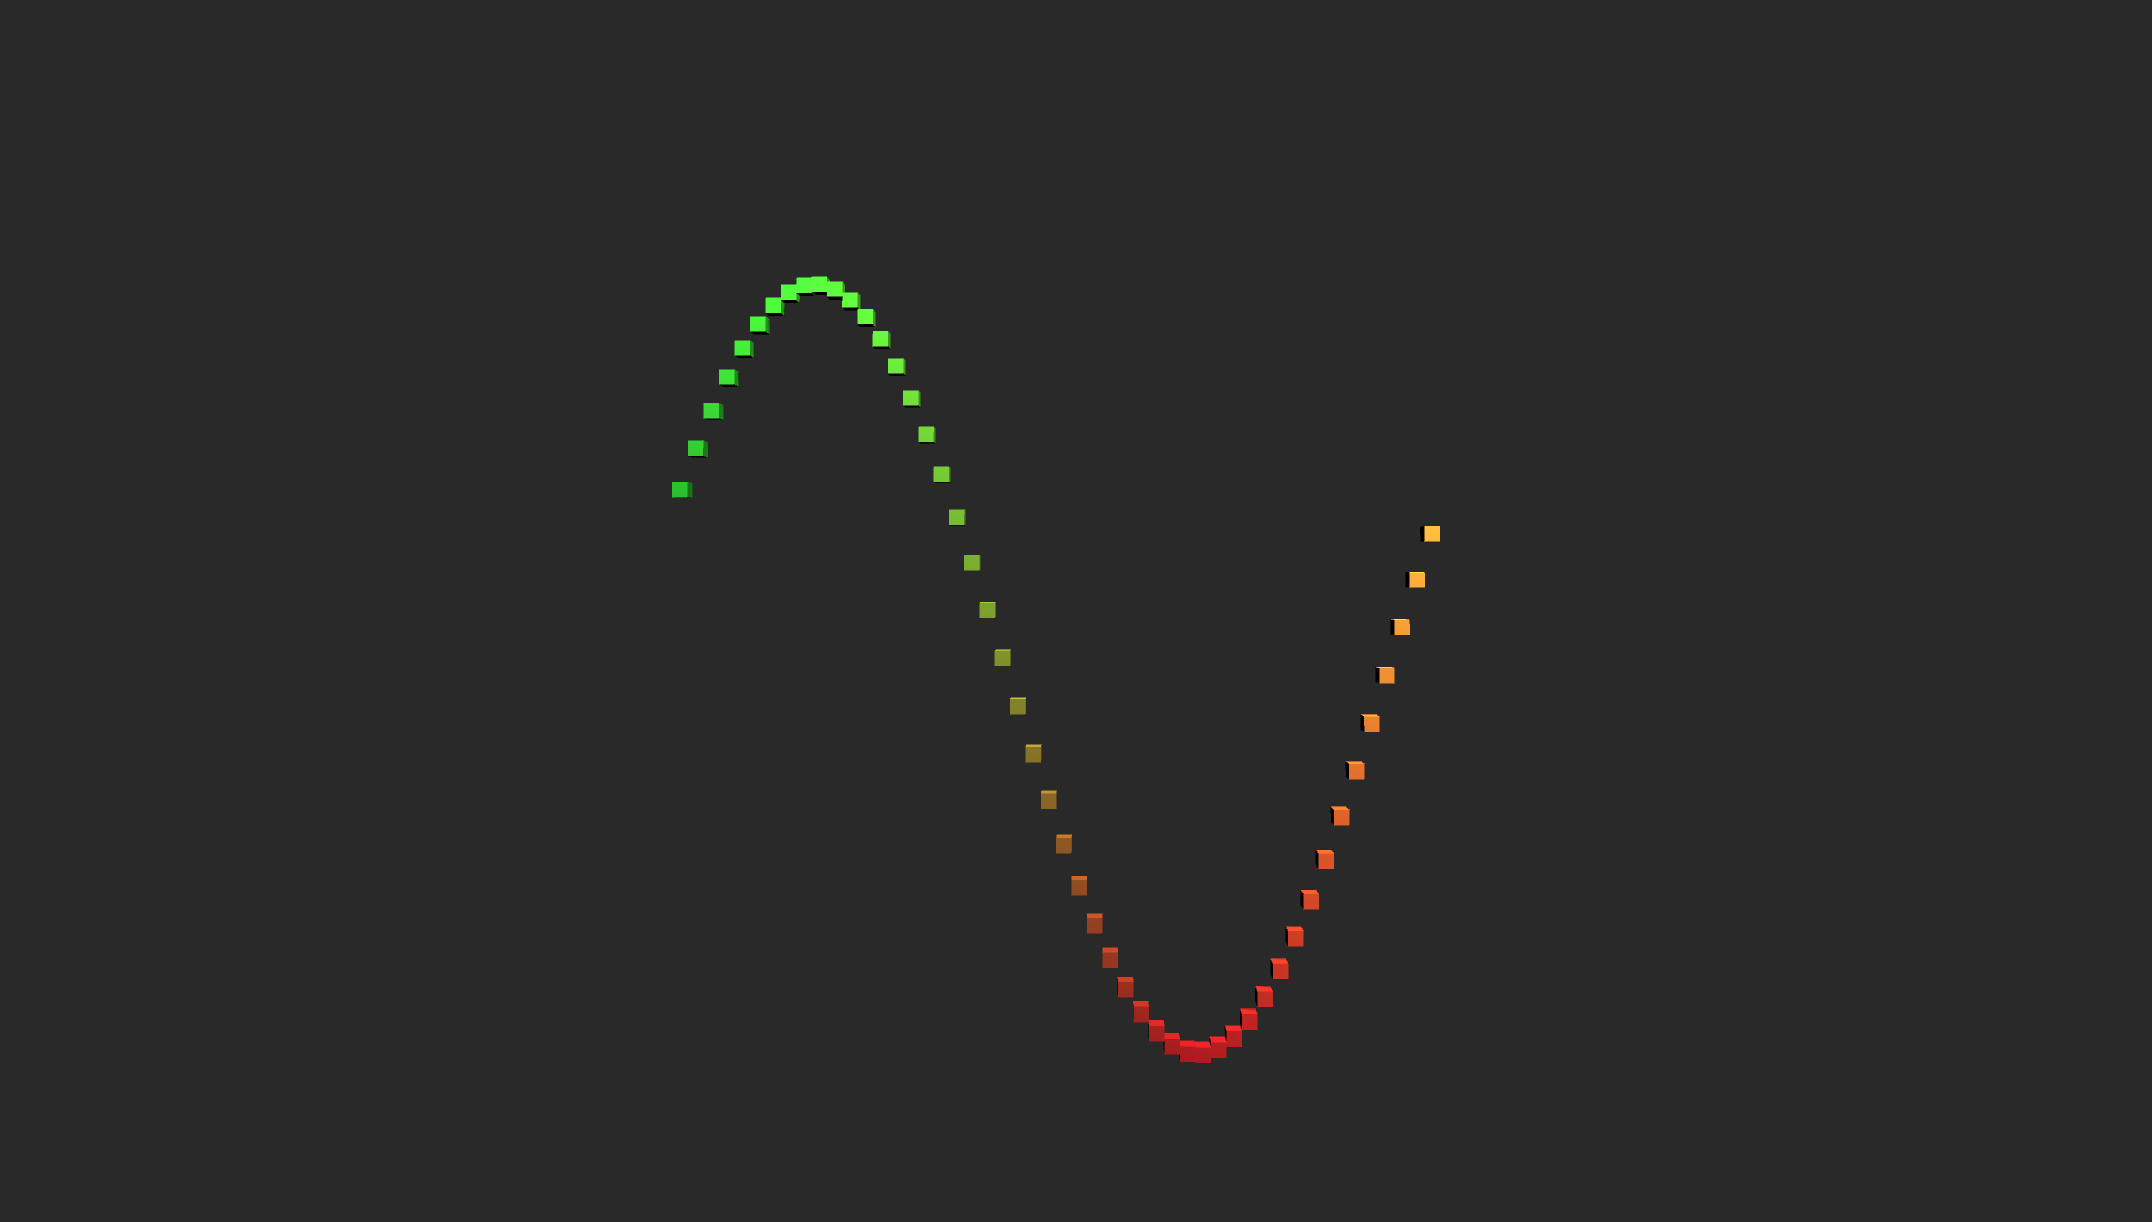 Learning Project: Creating an Animated Graph in Unity